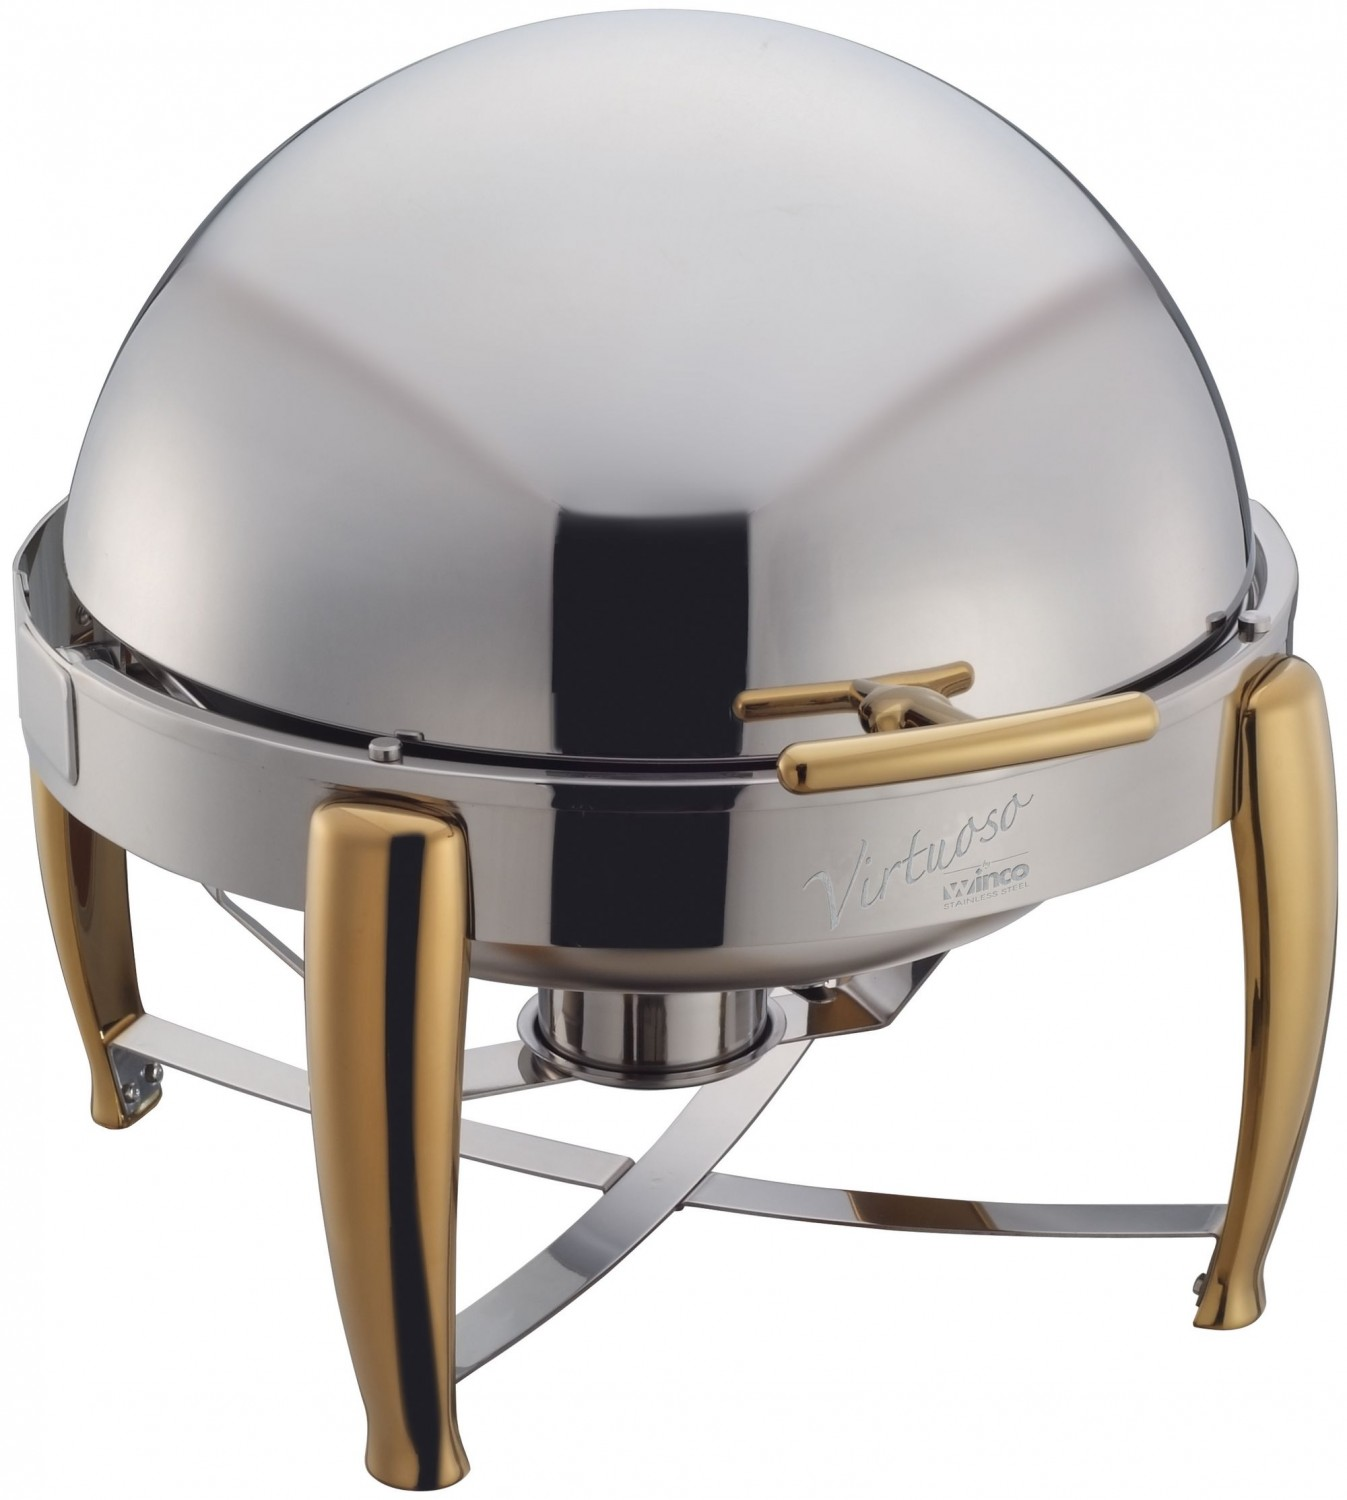 Winco 103A Virtuoso Full Size Round Roll Top Stainless Steel Chafer 6 Qt.